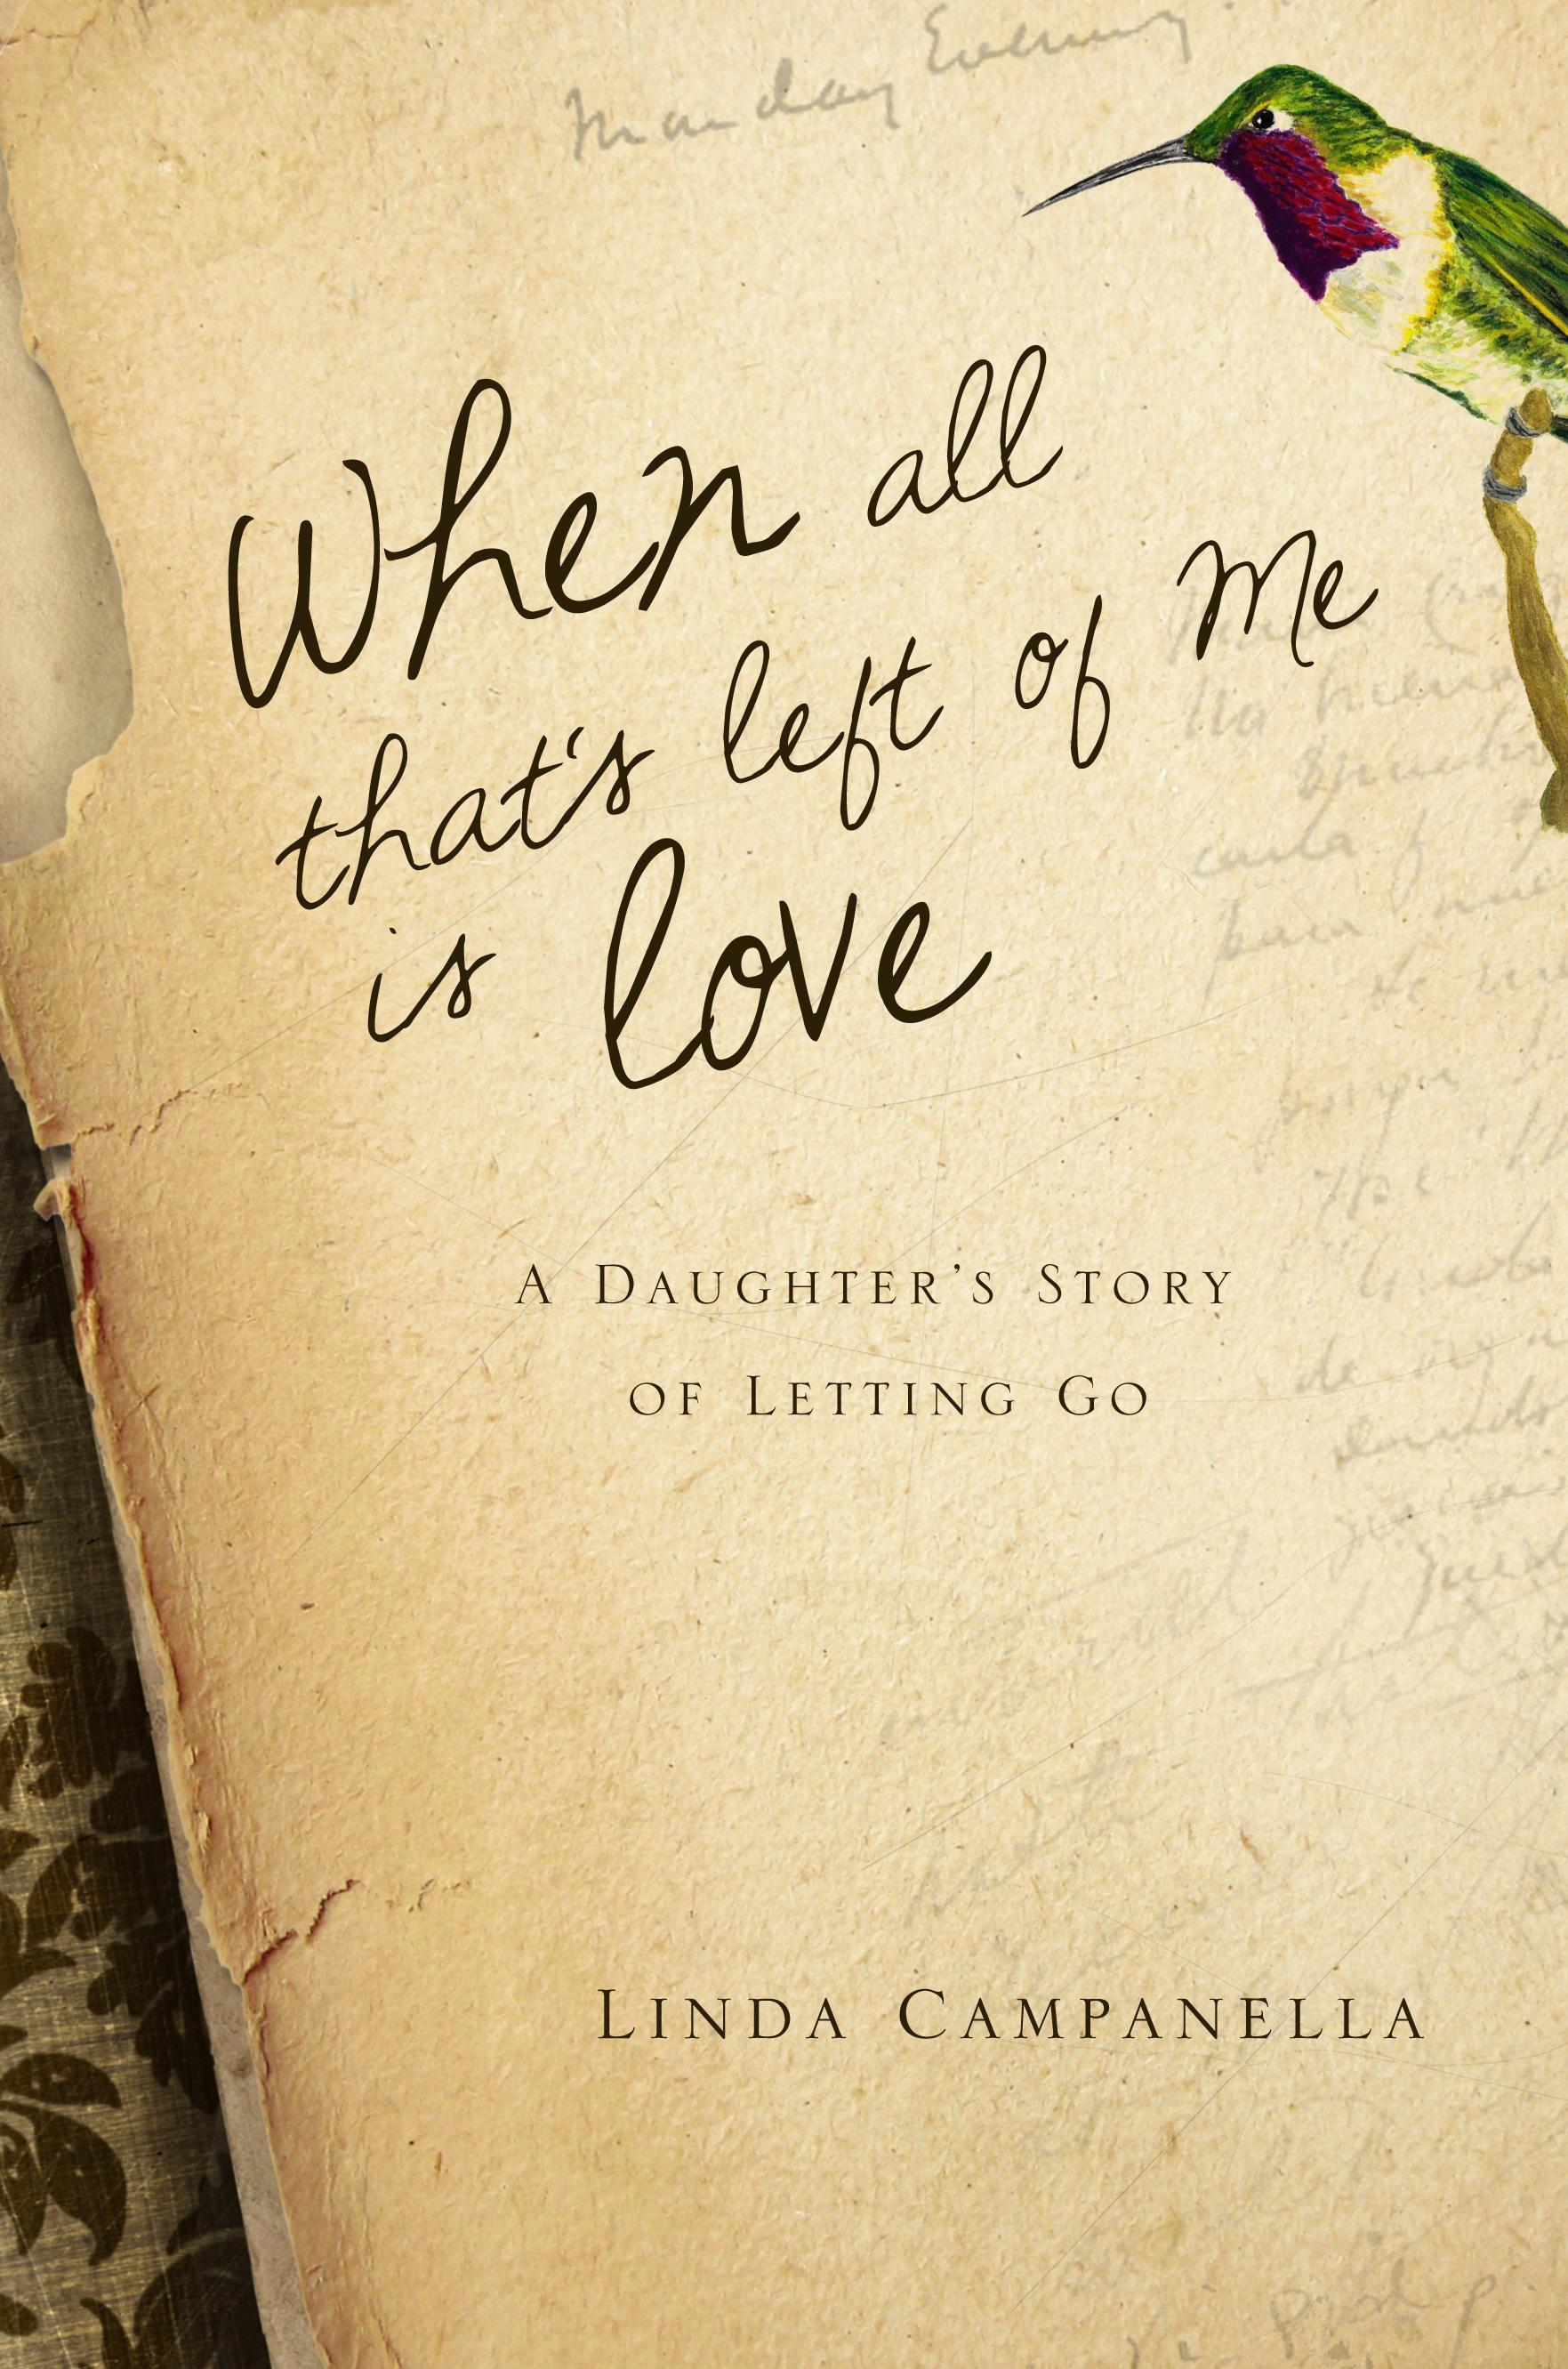 FINAL COVER (When All That's Left Of Me Is Love).JPG